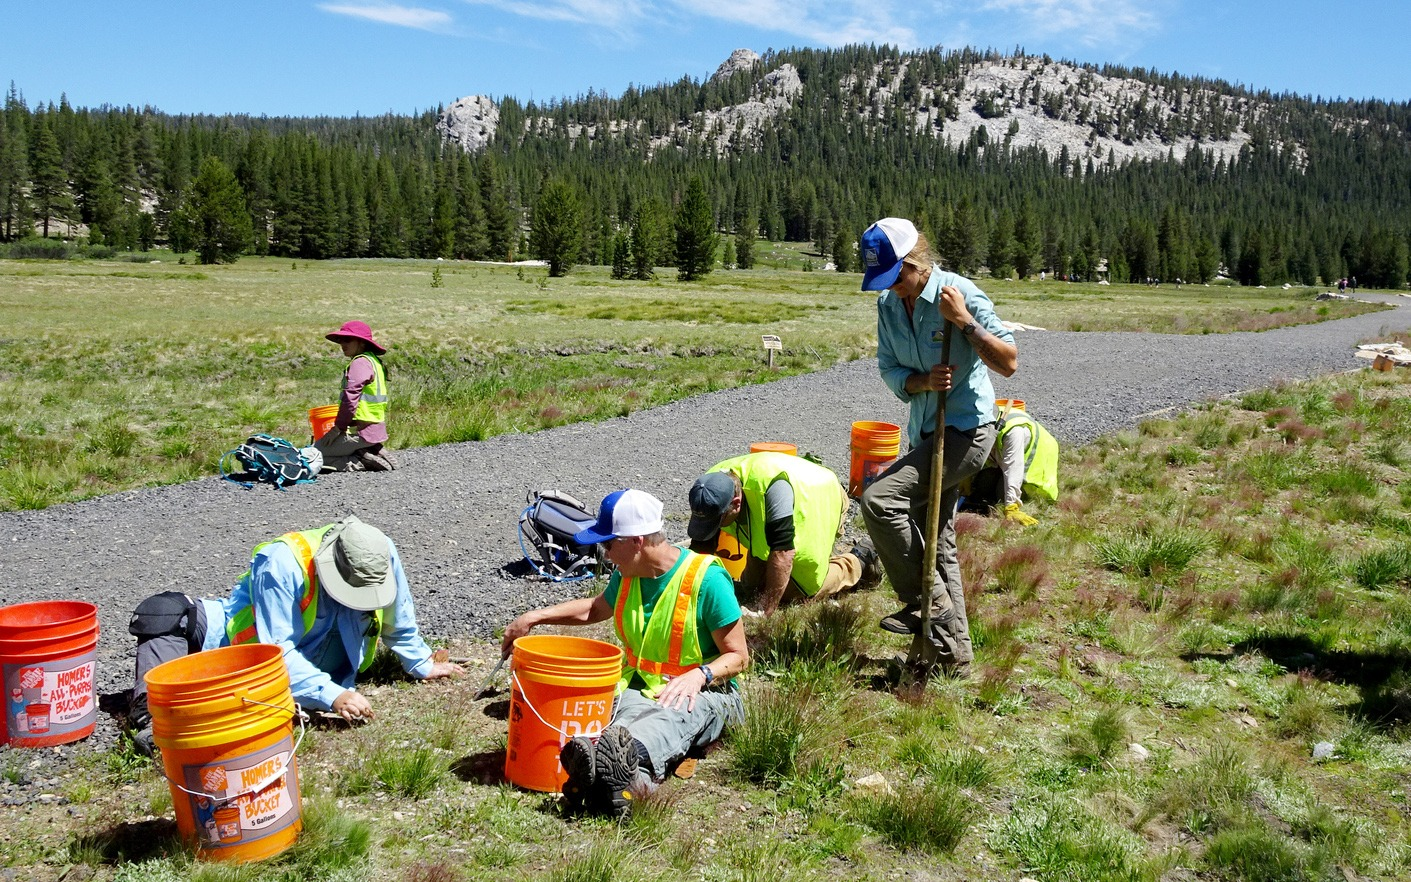 Equipped with neon vests, orange buckets and digging tools, 2019 work week volunteers help revitalize habitat in Tuolumne Meadows. Photo: Steven Matros.